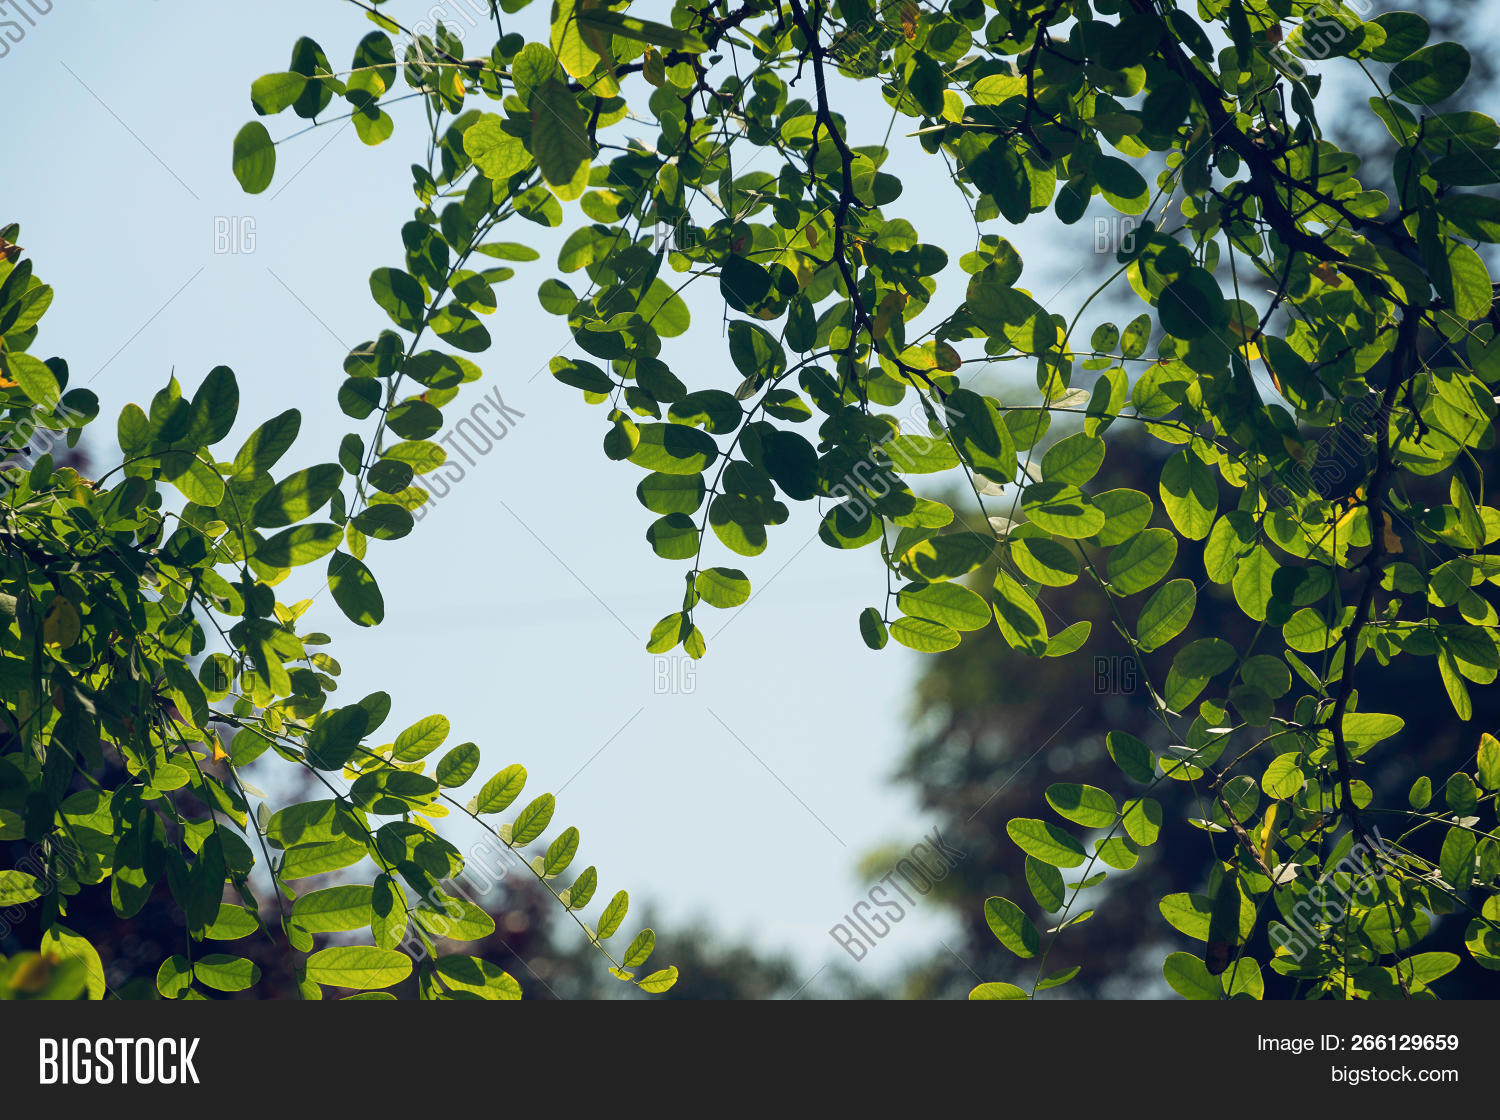 Acacia Leaves Nature Image Photo Free Trial Bigstock